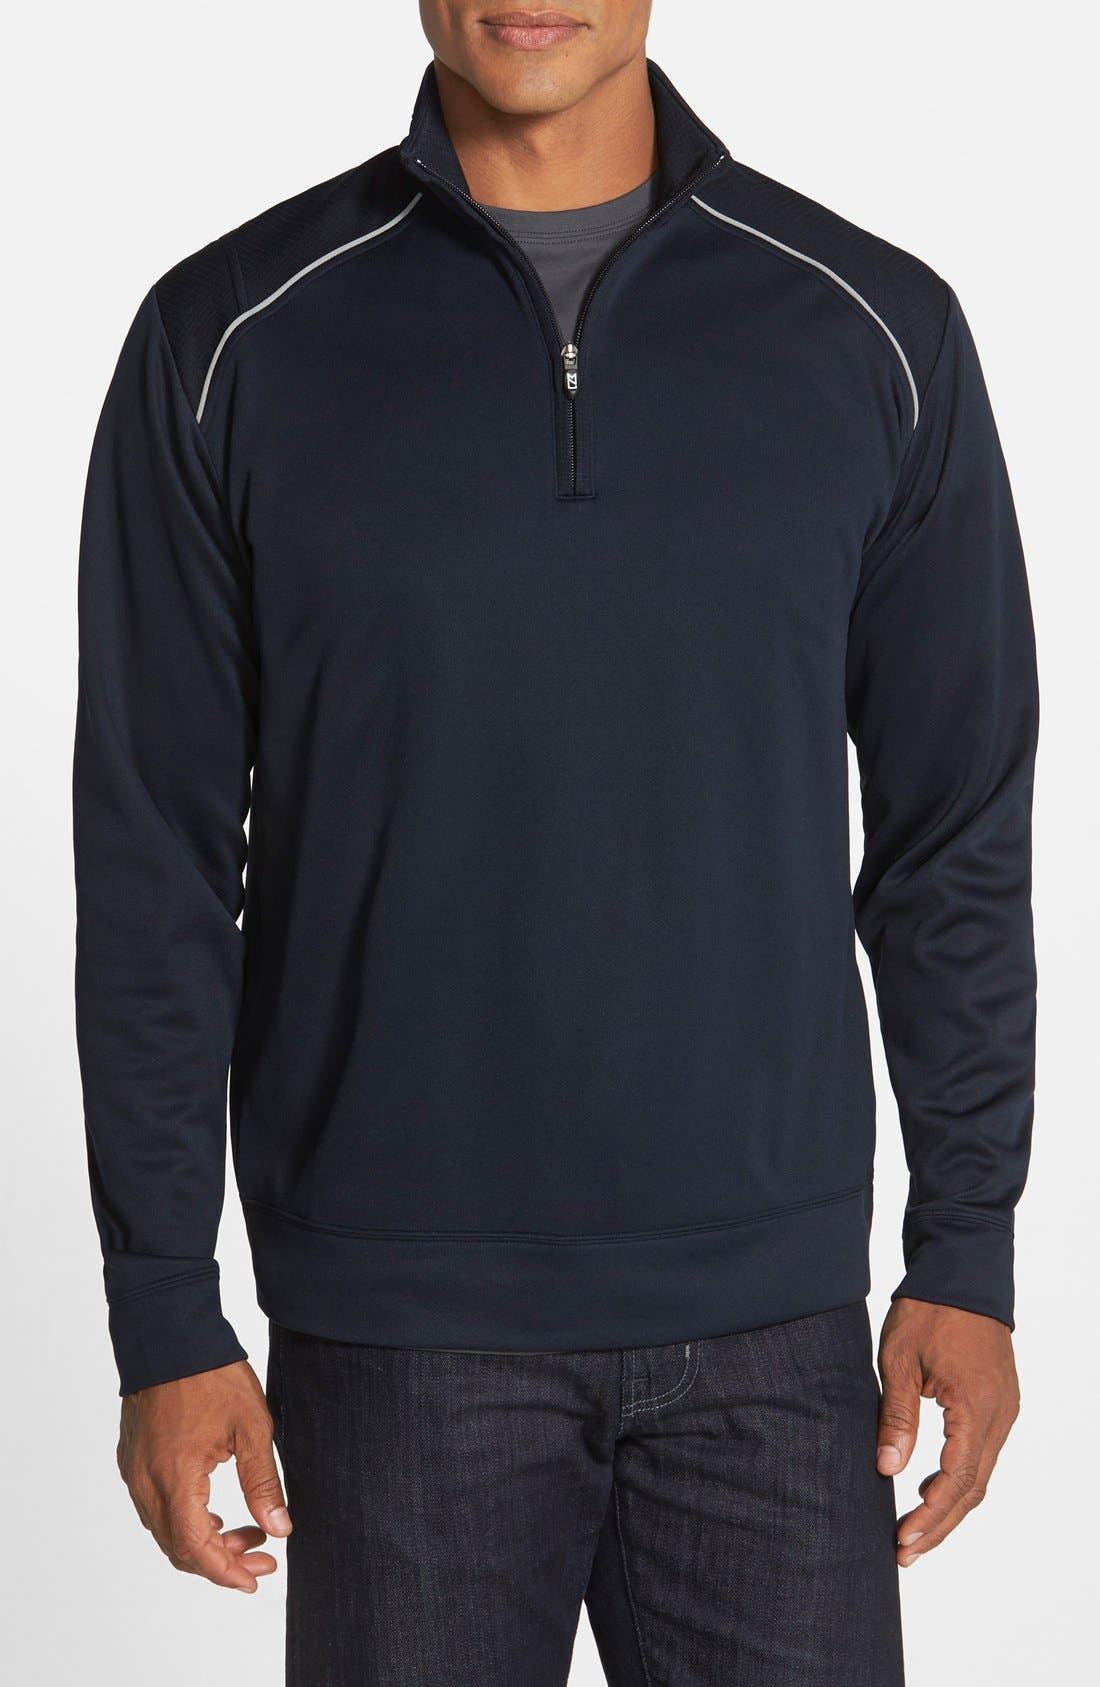 Ridge WeatherTec Wind & Water Resistant Pullover,                             Main thumbnail 1, color,                             NAVY BLUE